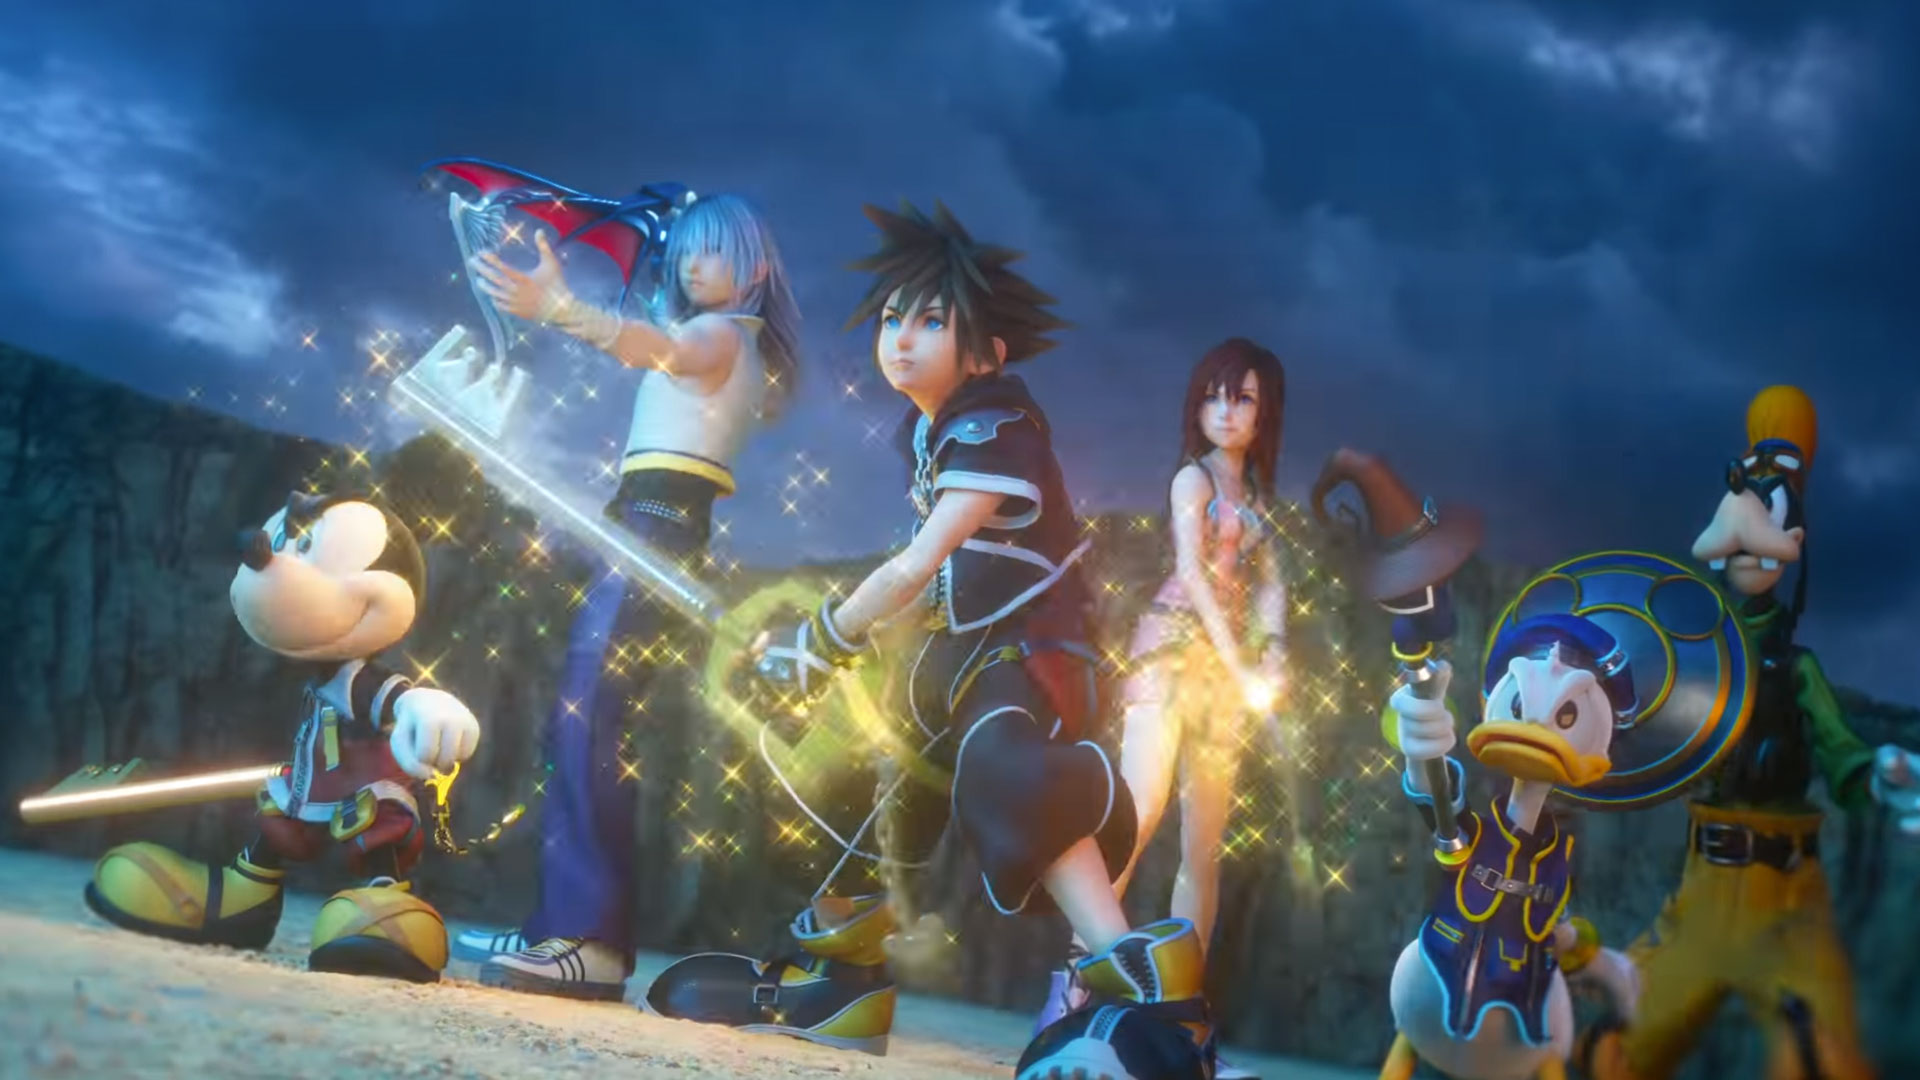 efb02b4d147e Kingdom Hearts 3 ending explained - What do all those endings really mean  for the future of the series? | GamesRadar+